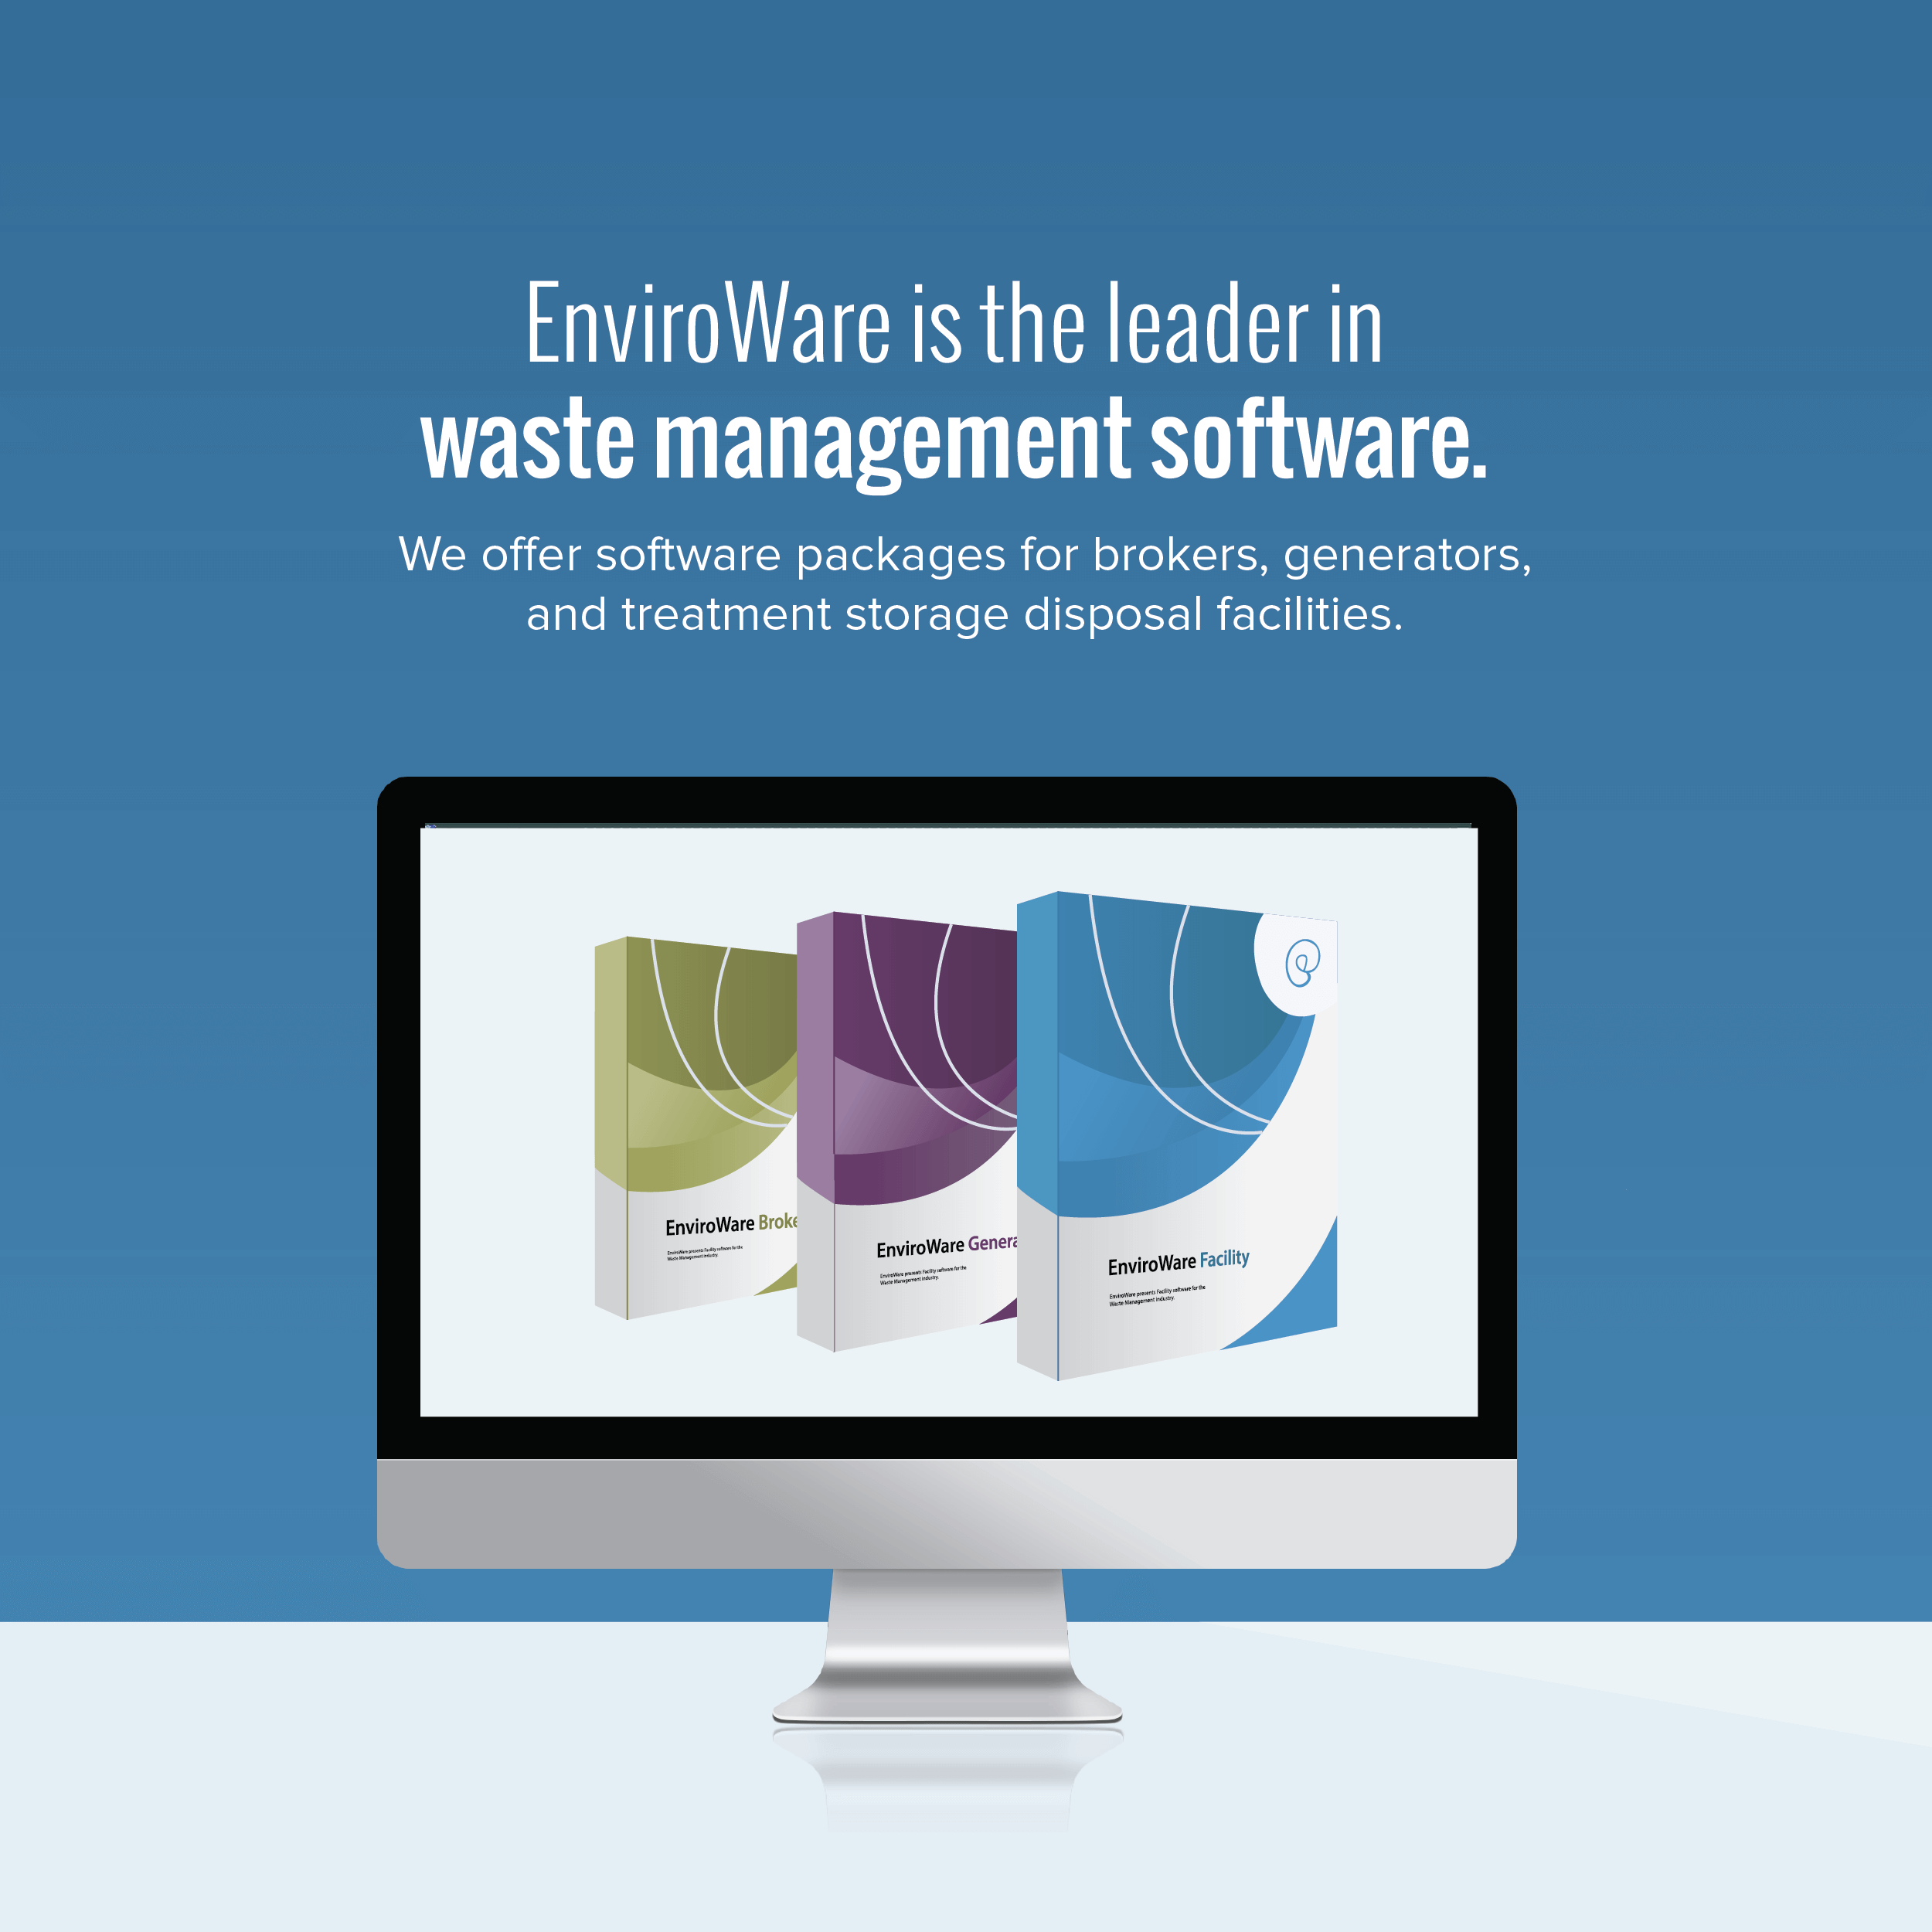 EnviroWare Waste Management Software